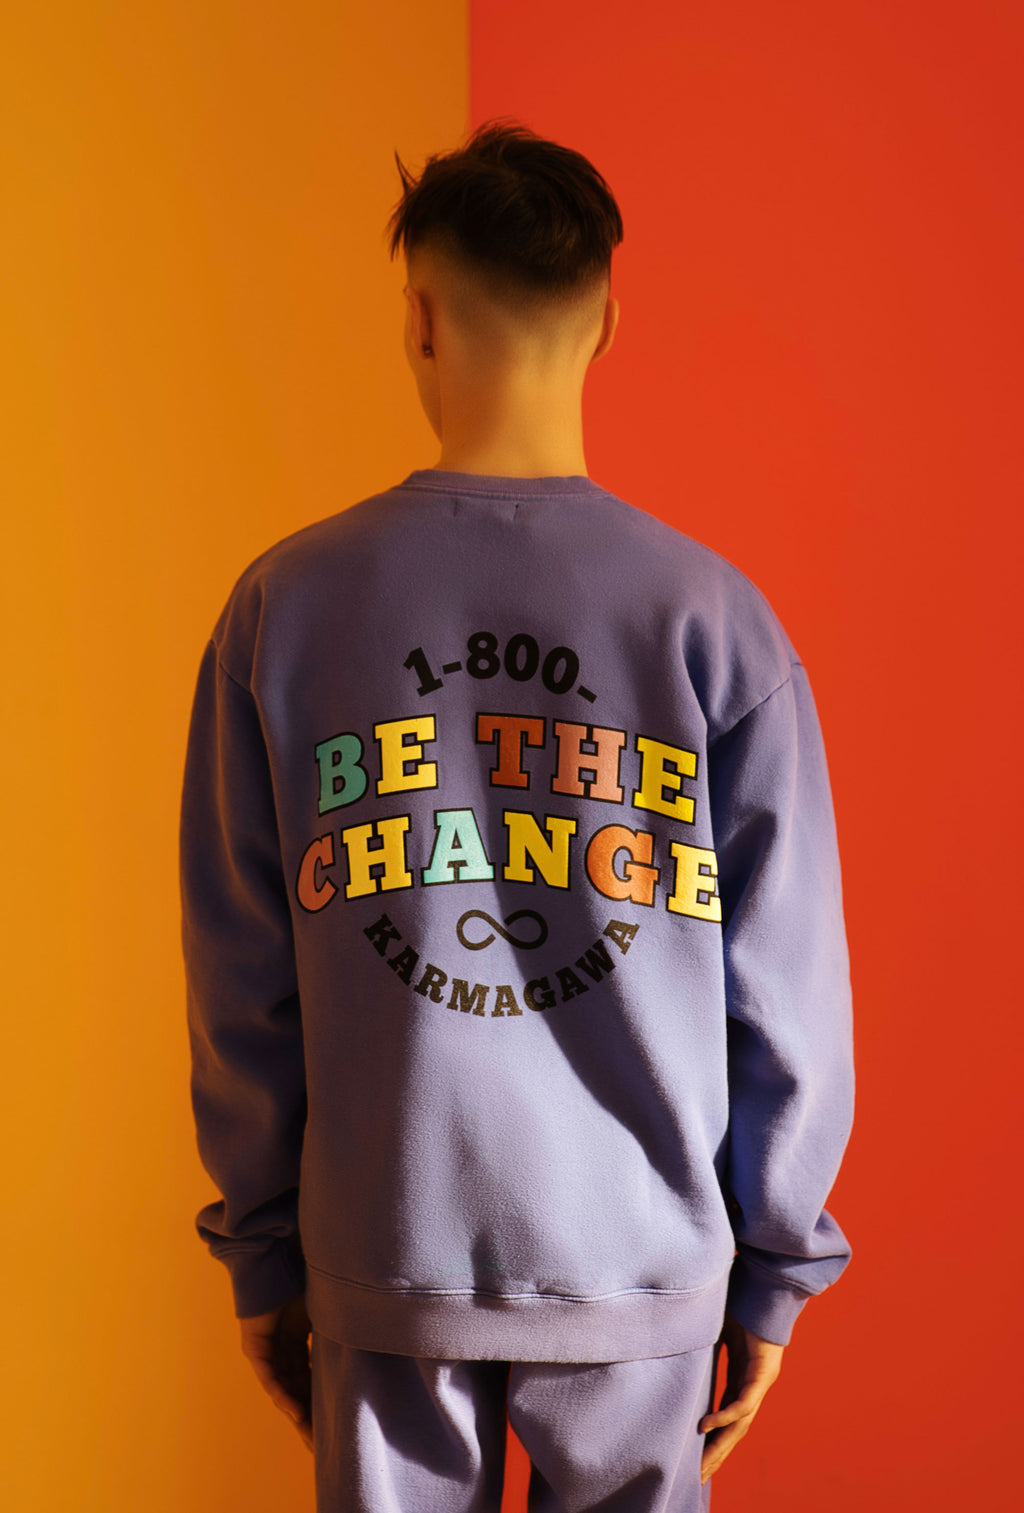 1-800-BE-THE-CHANGE Pullover